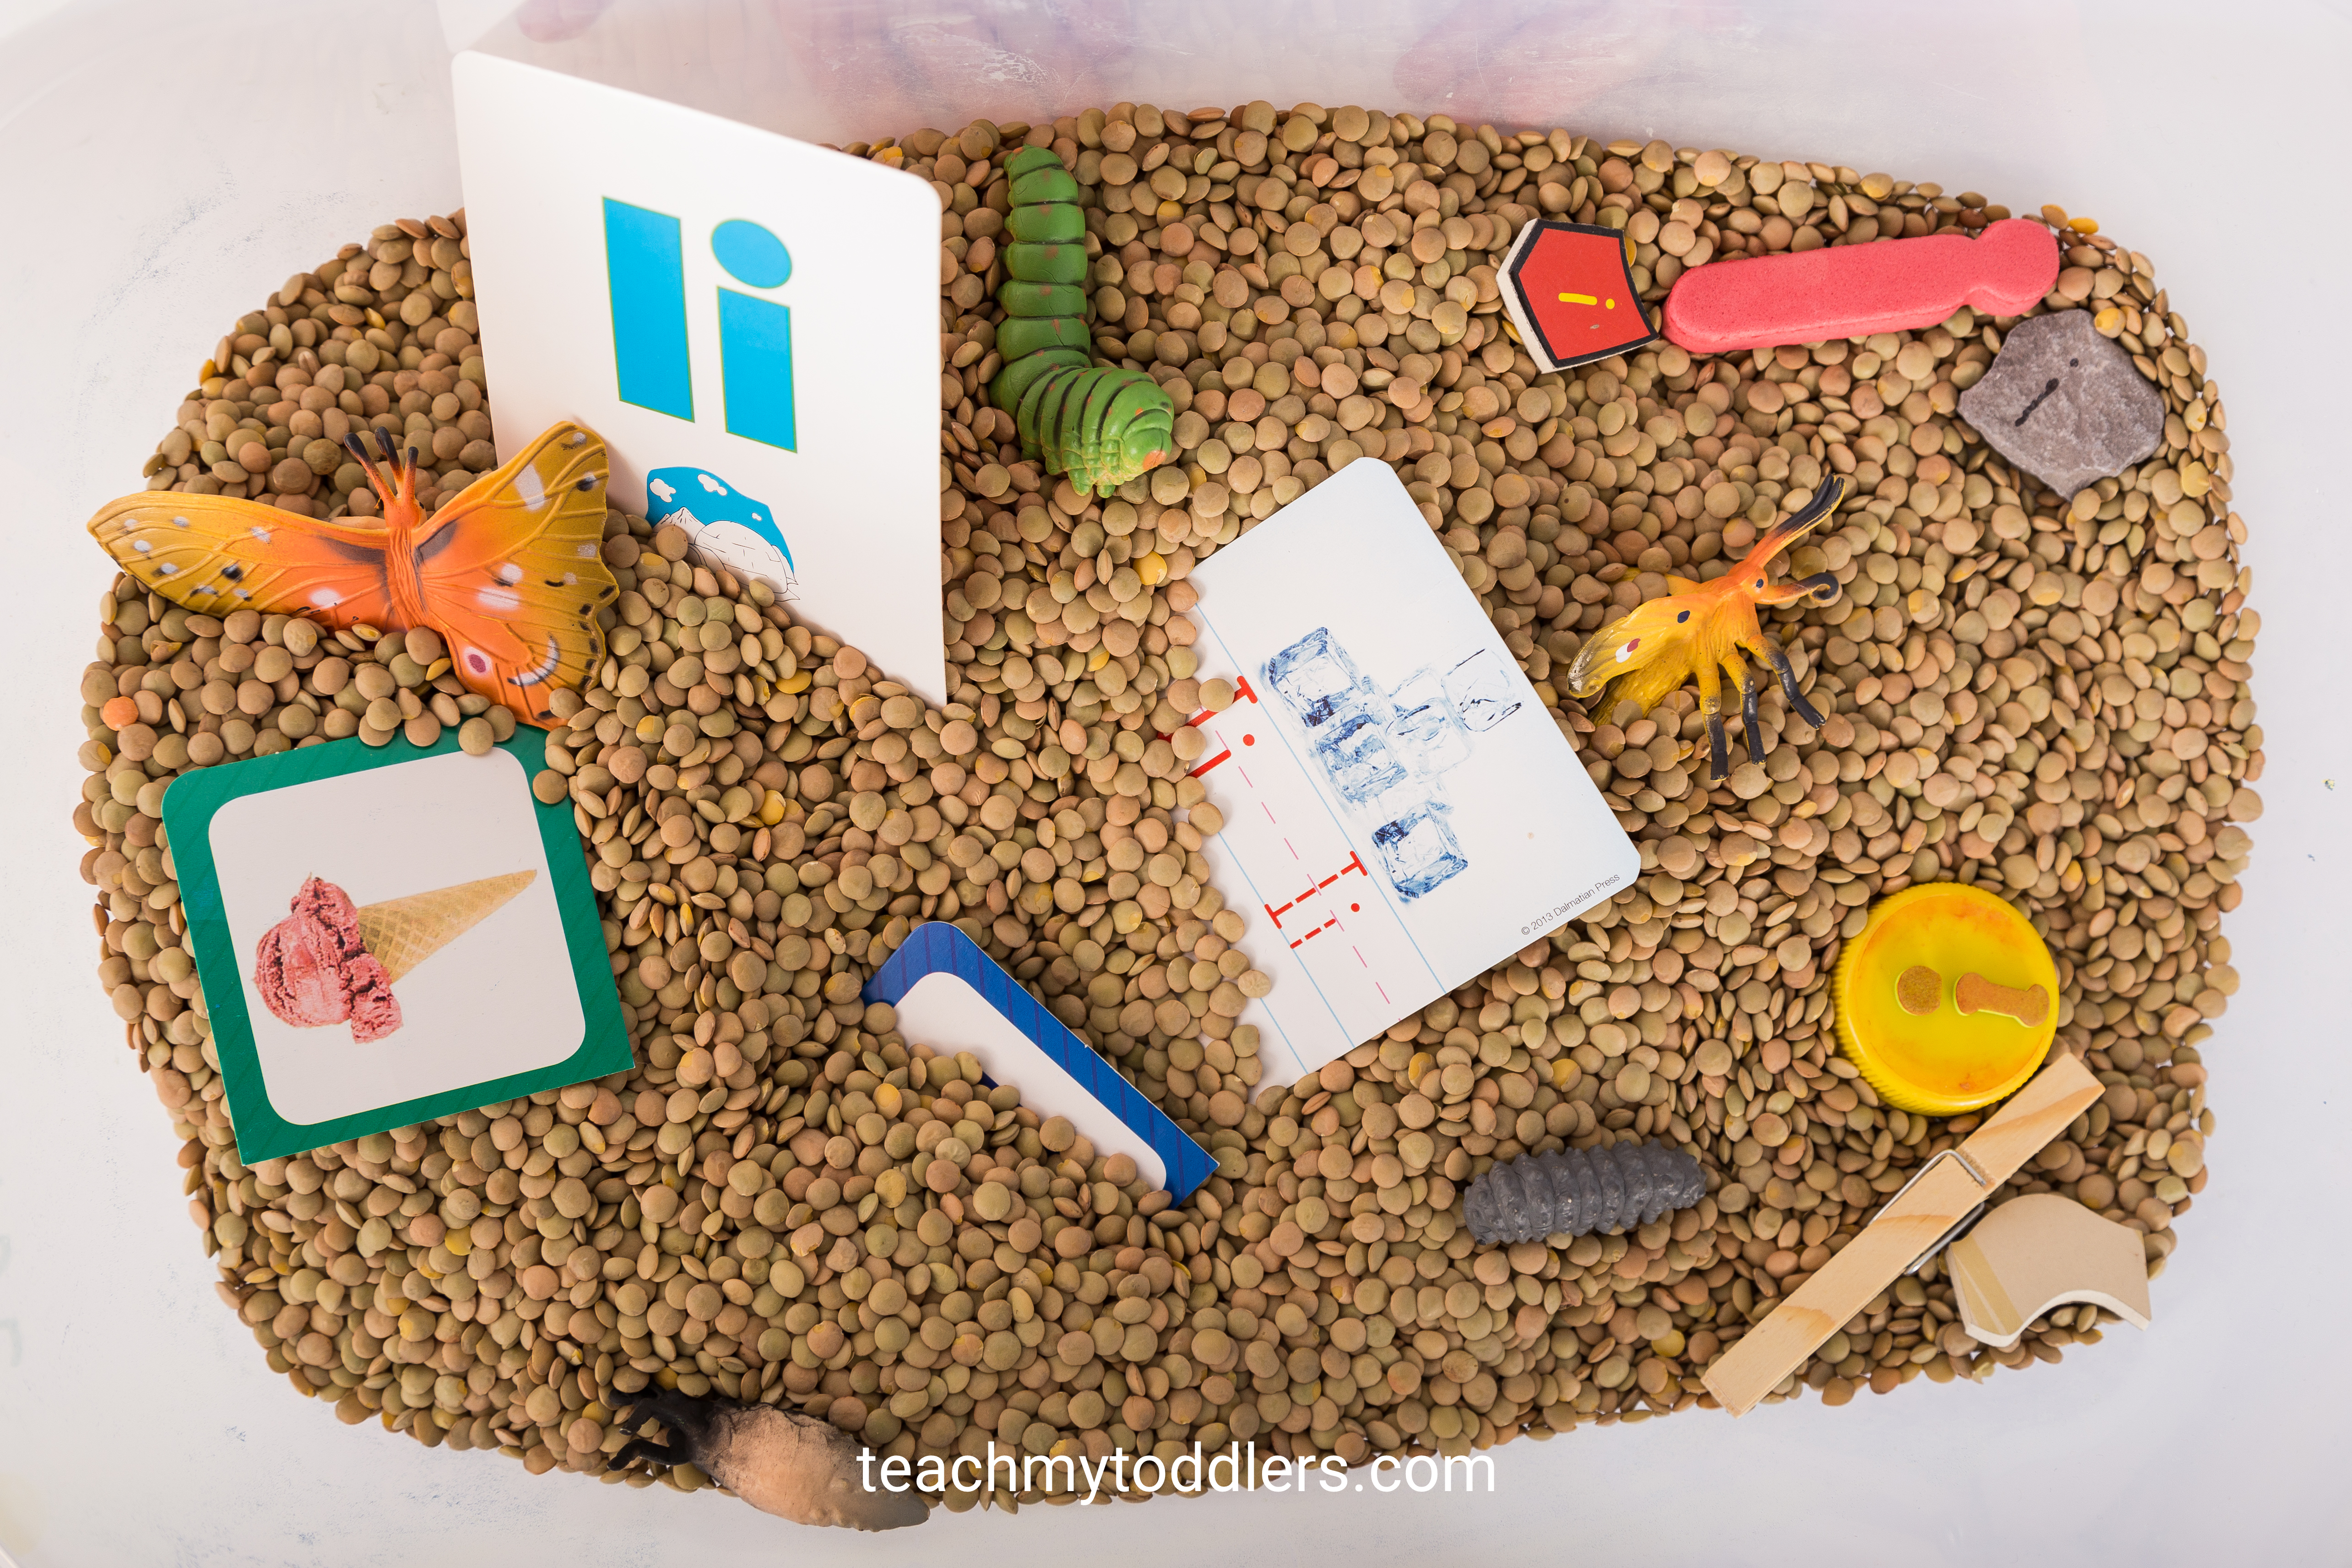 Find out how to use these i is for insect activities to teach toddlers the letter i